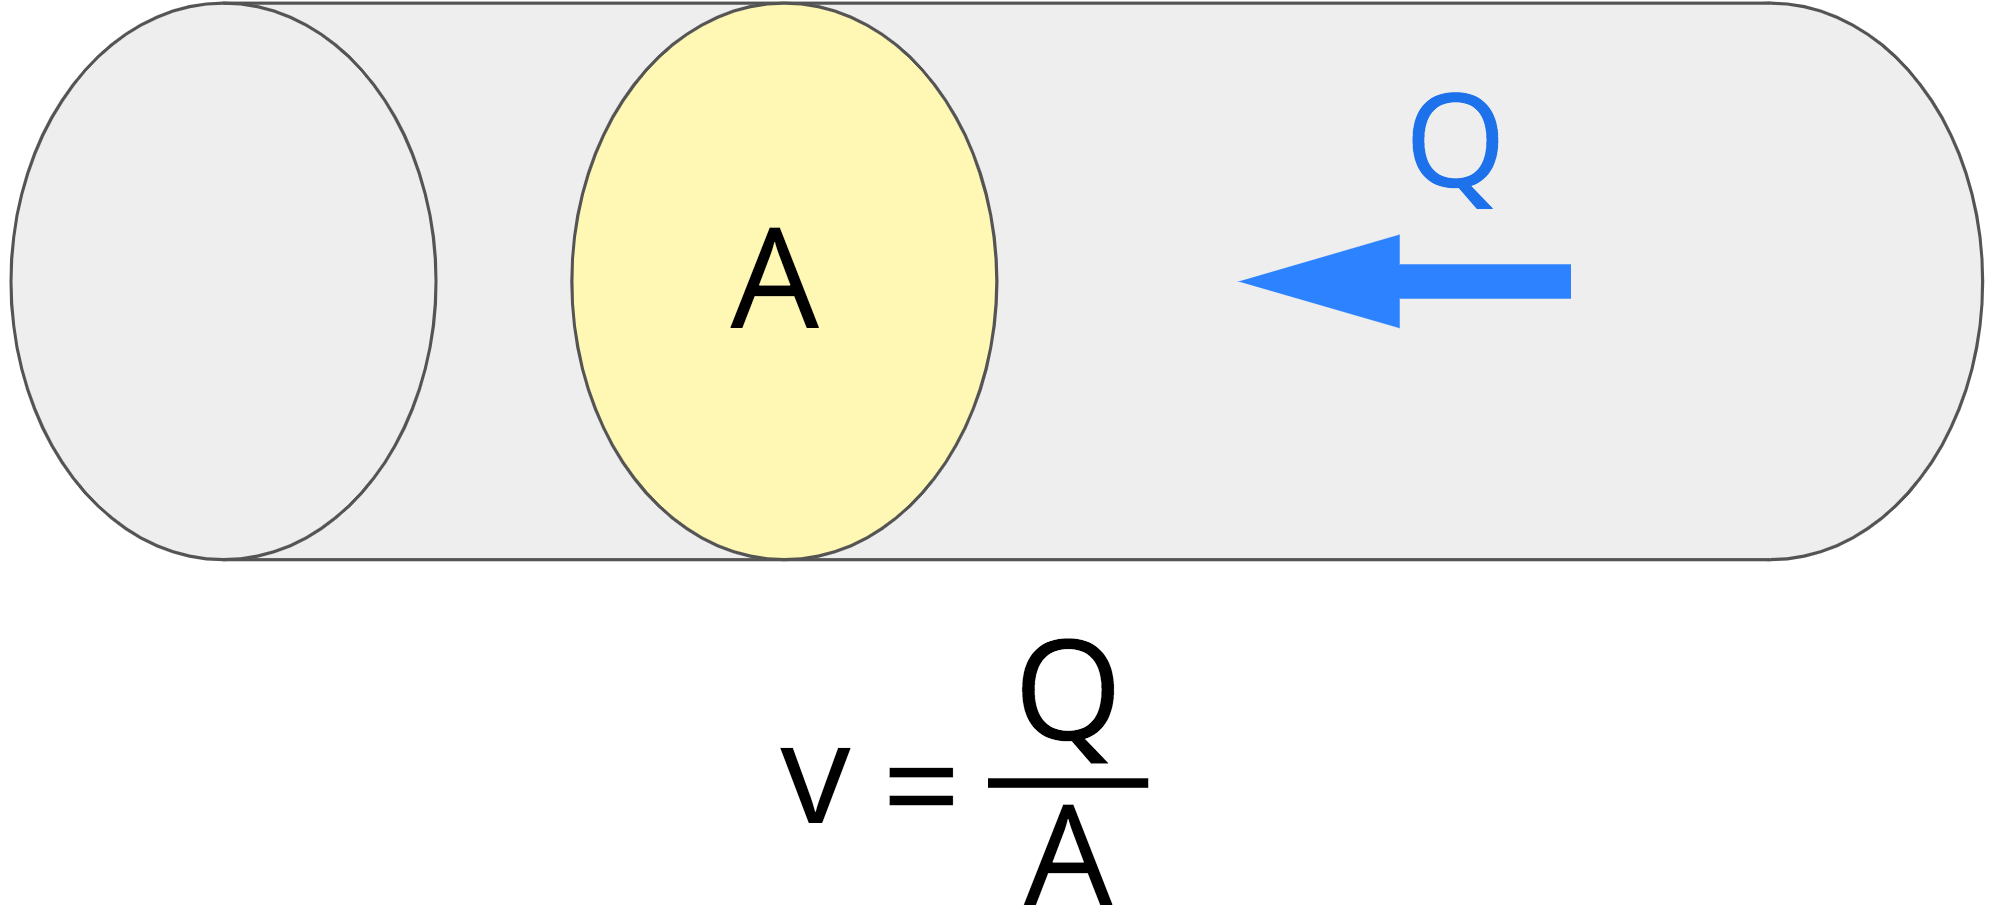 diagram showing the velocity is equal to flow rate divided by cross-sectional area